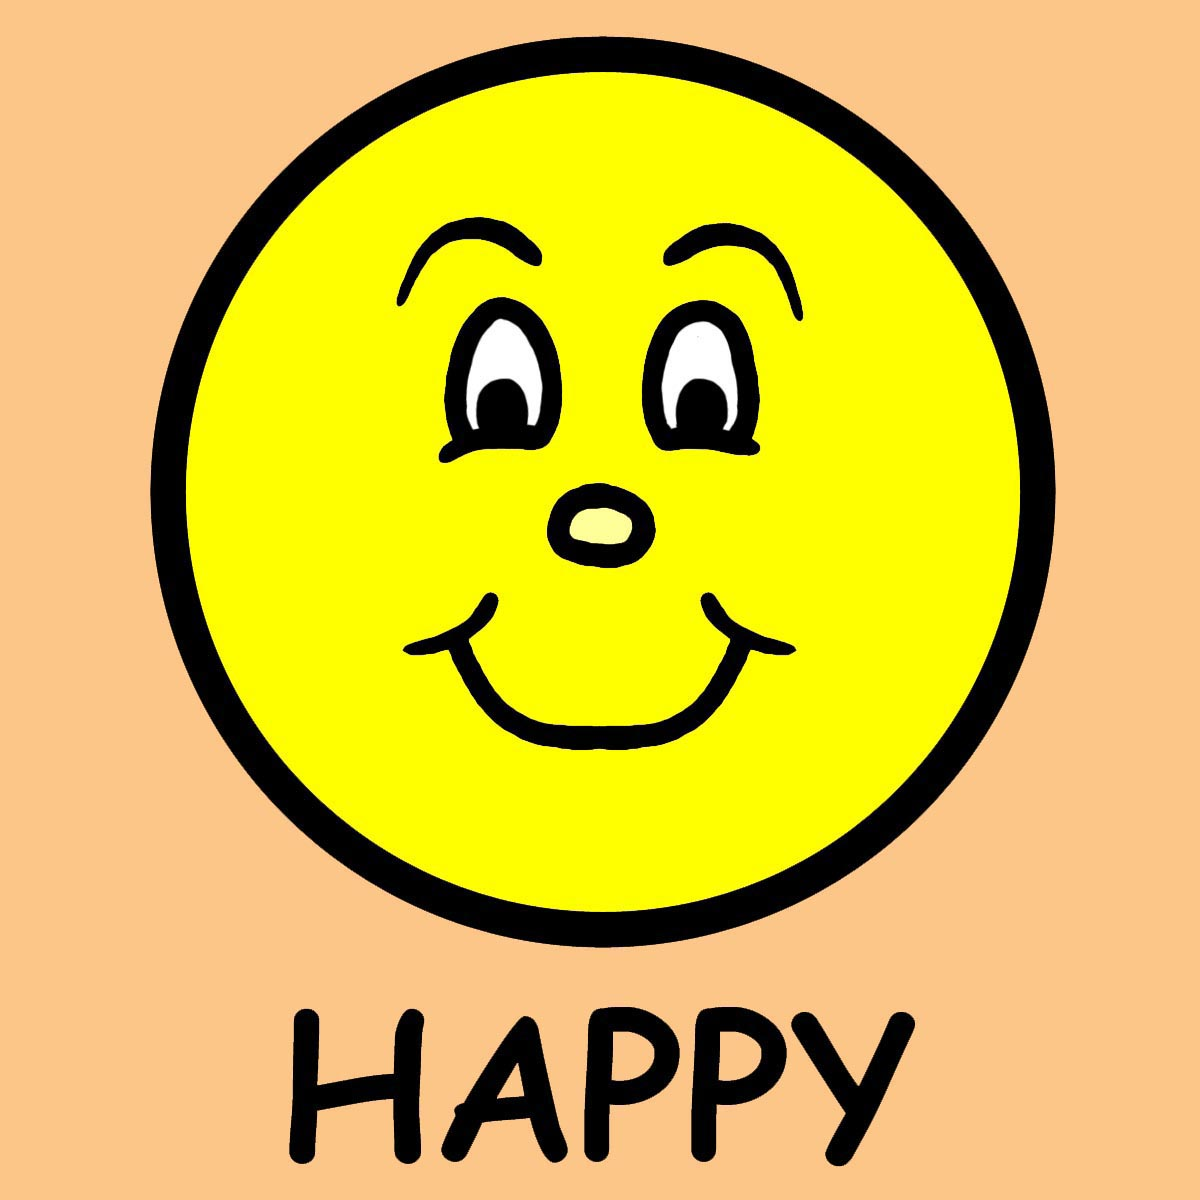 clipart for happy - photo #1